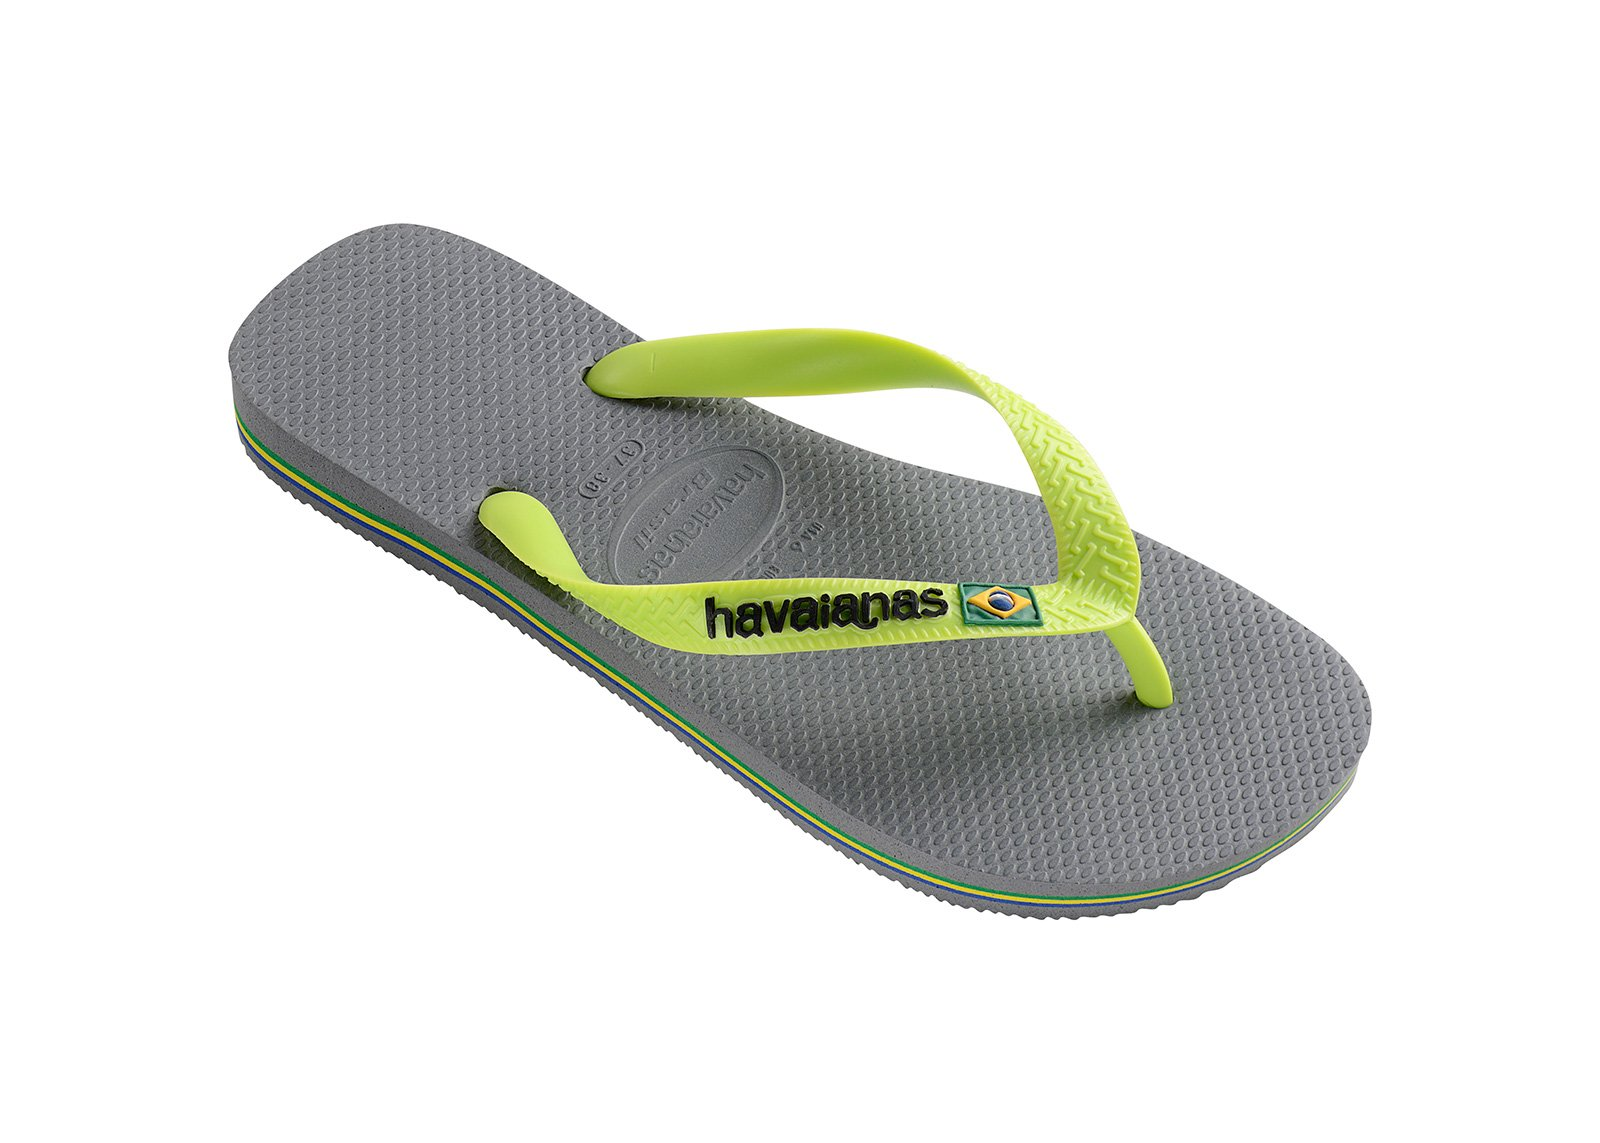 6f4cad0ee9517 Two-tone Grey And Lime Green Flip Flops With The Havaianas Logo - Brasil  Logo Steel Grey - Havaianas